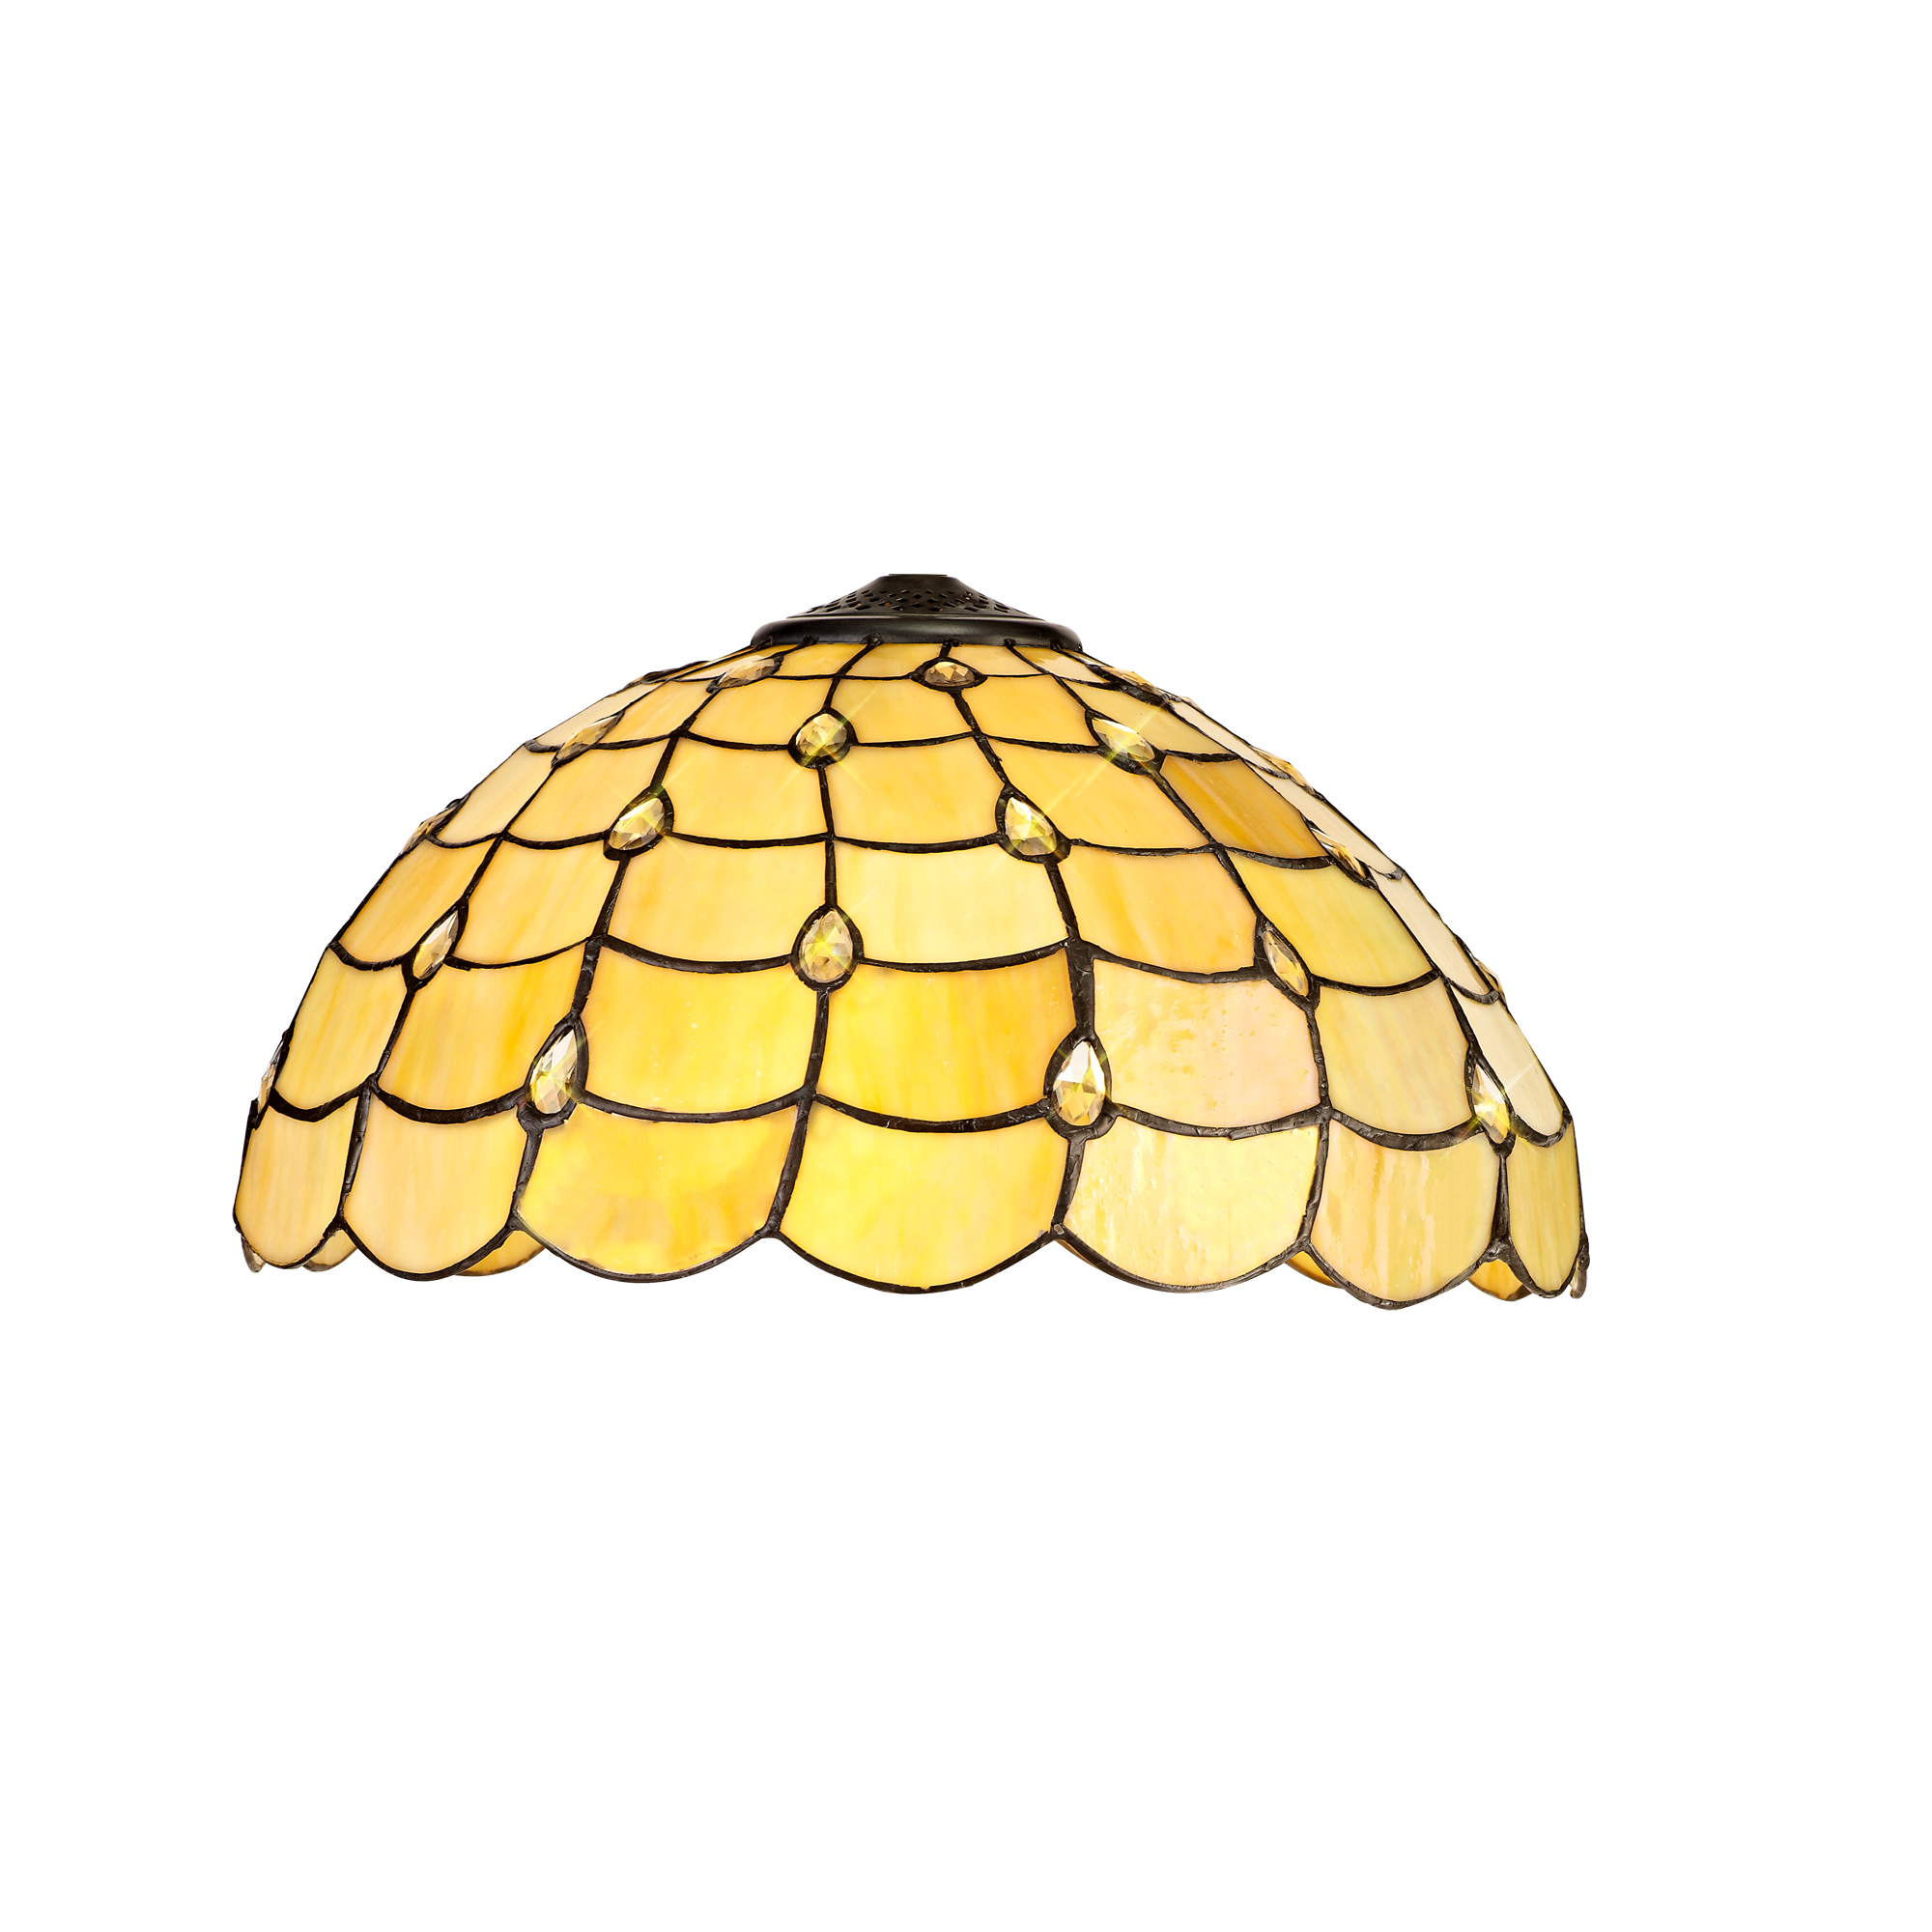 3 Light Downlighter Pendant E27 With 40cm Tiffany Shade, Beige/Clear Crystal/Aged Antique Brass